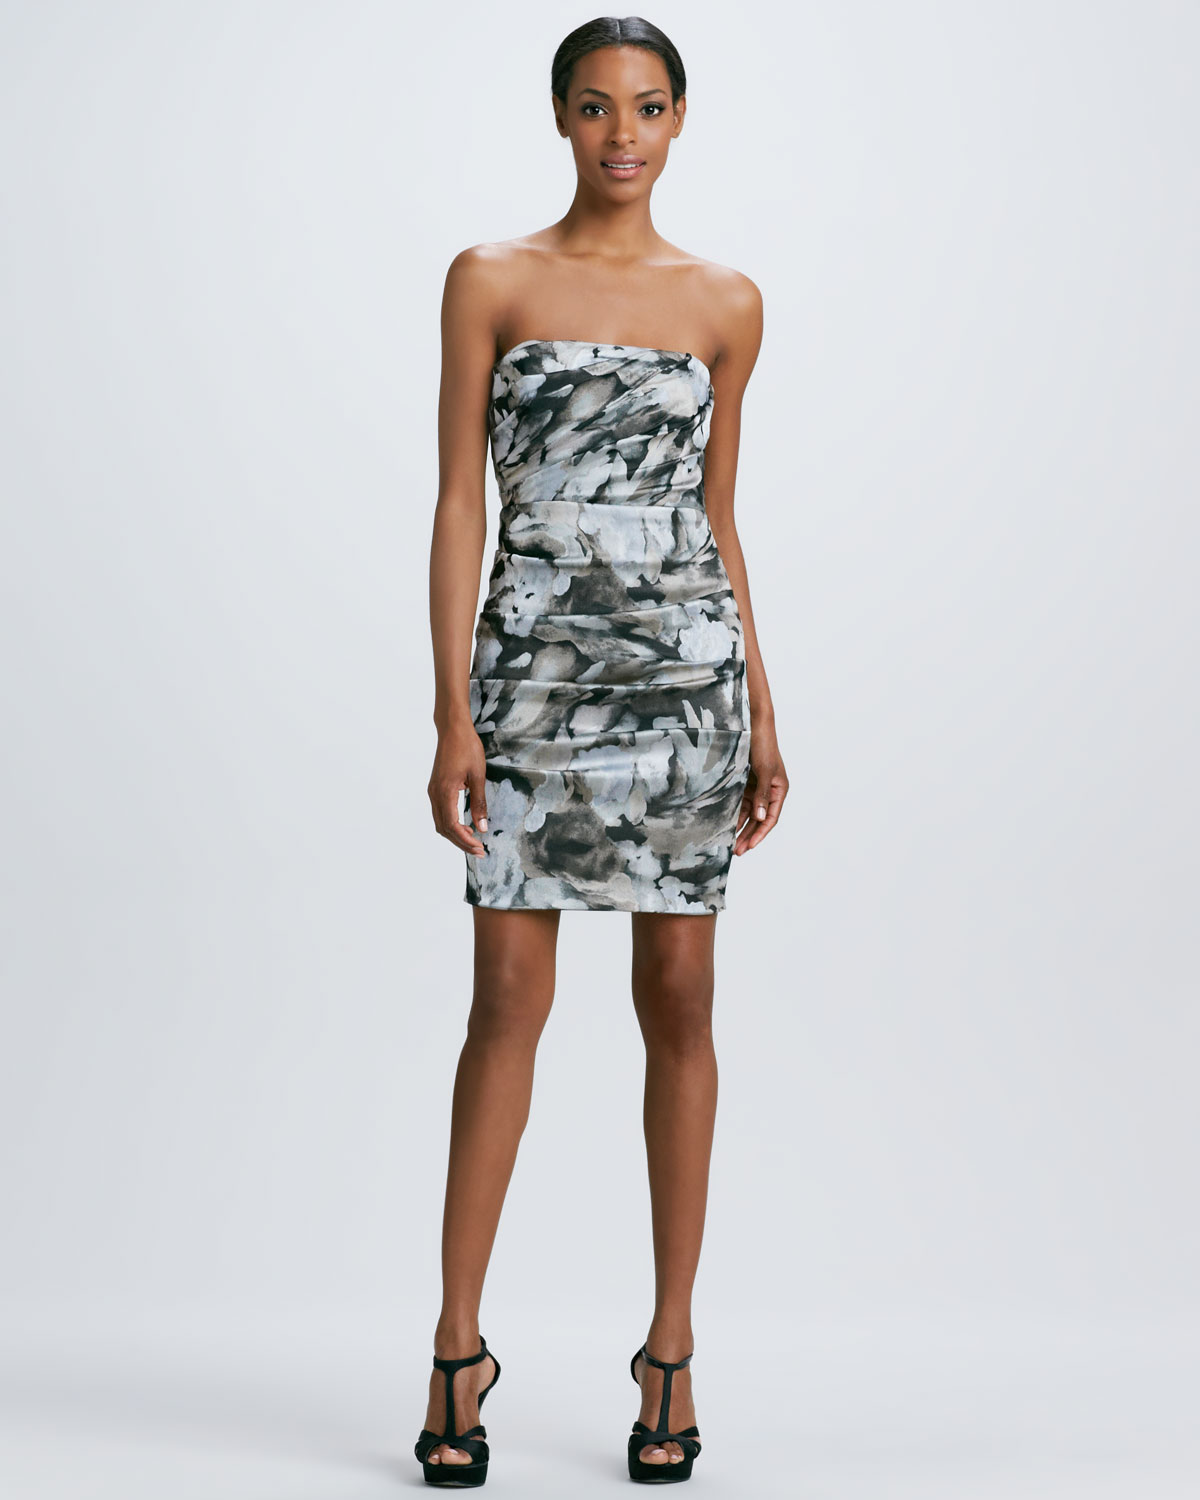 Nicole miller Strapless Floral Print Cocktail Dress in Black | Lyst